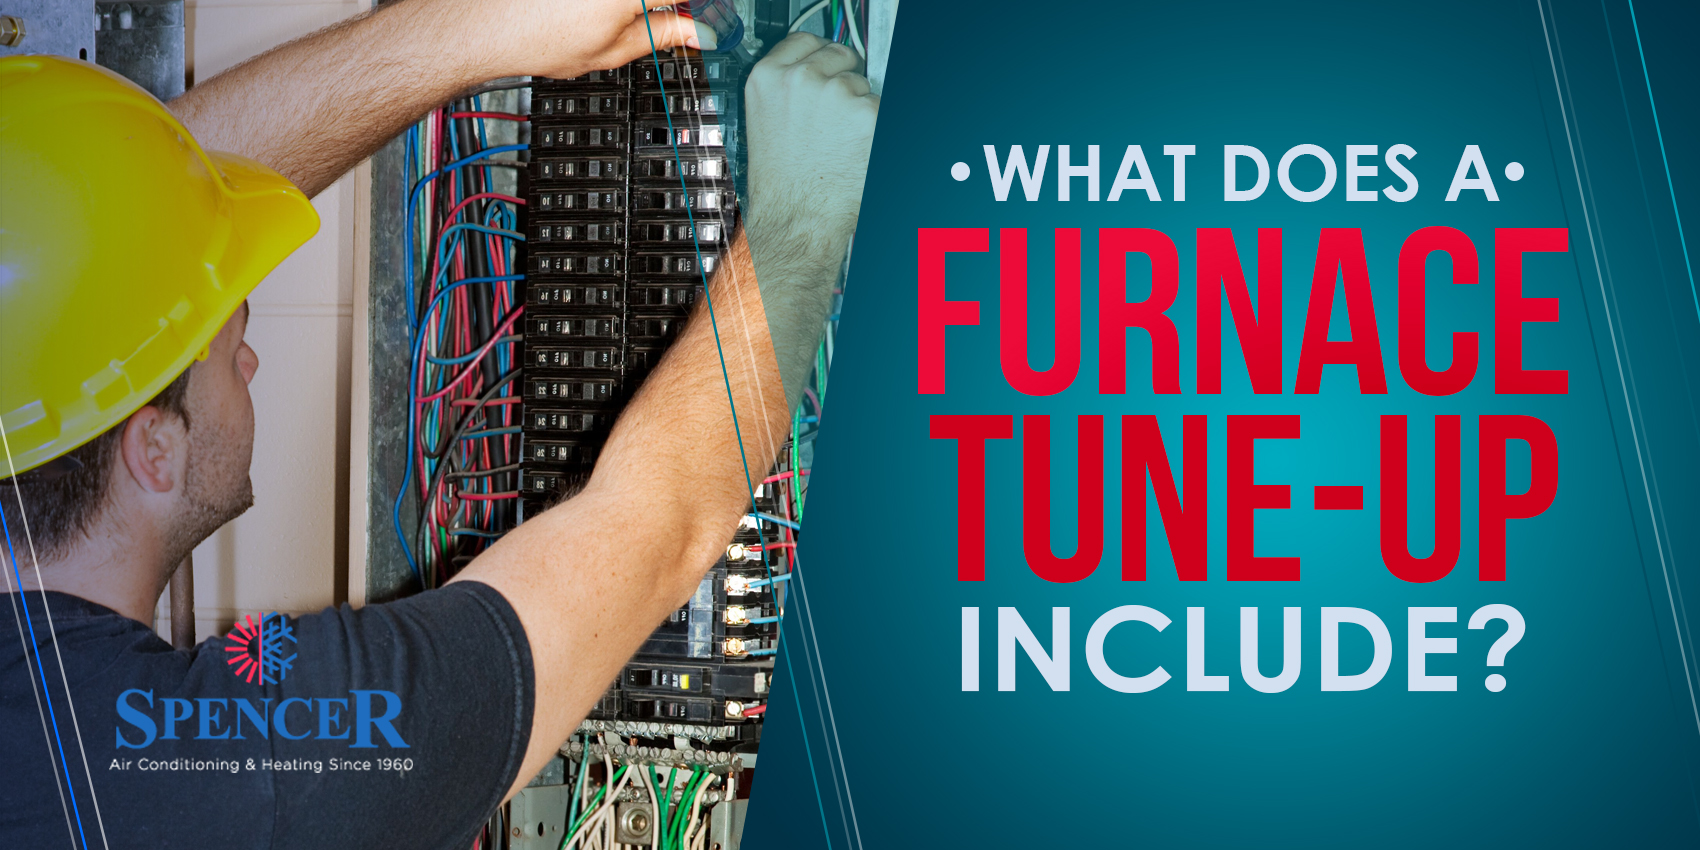 What Does A Furnace Tune-Up Include?